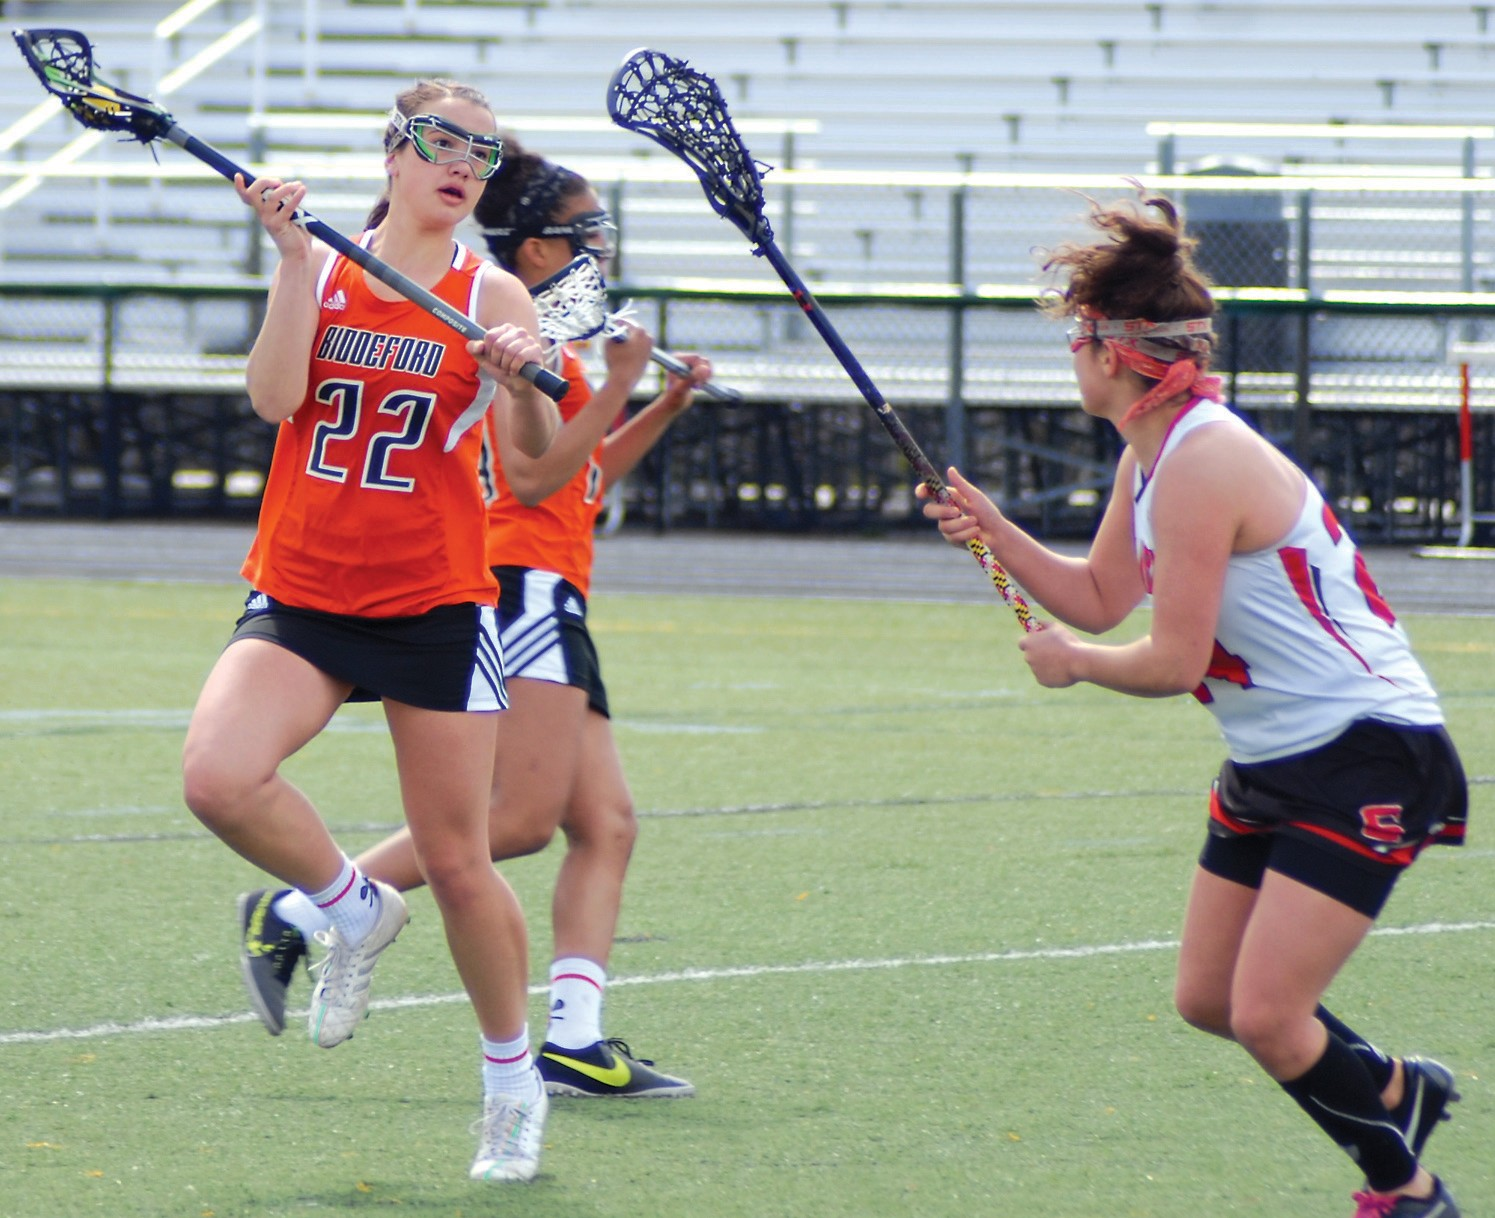 Biddeford's Rebekah Guay looks to make a pass during Tuesday's game at Scarborough.